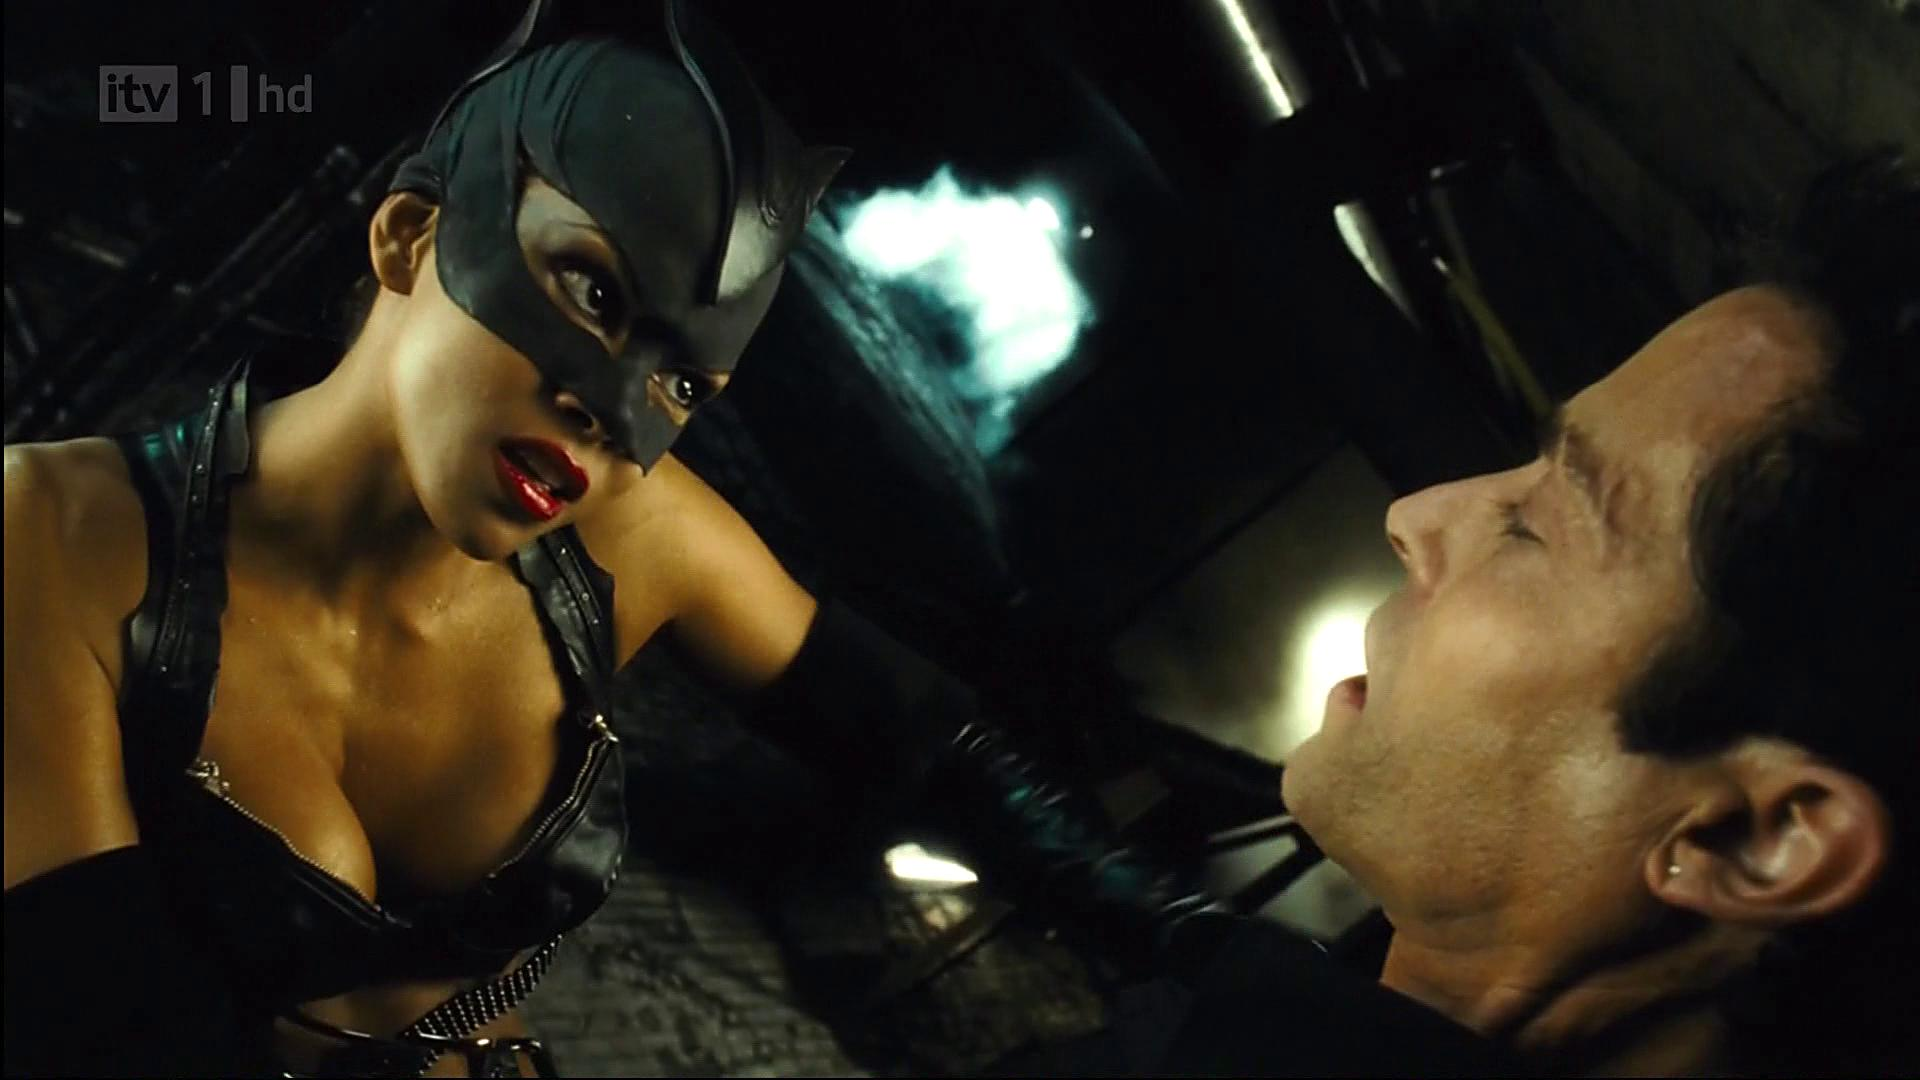 Catwoman halle berry sex lasbein exploited images